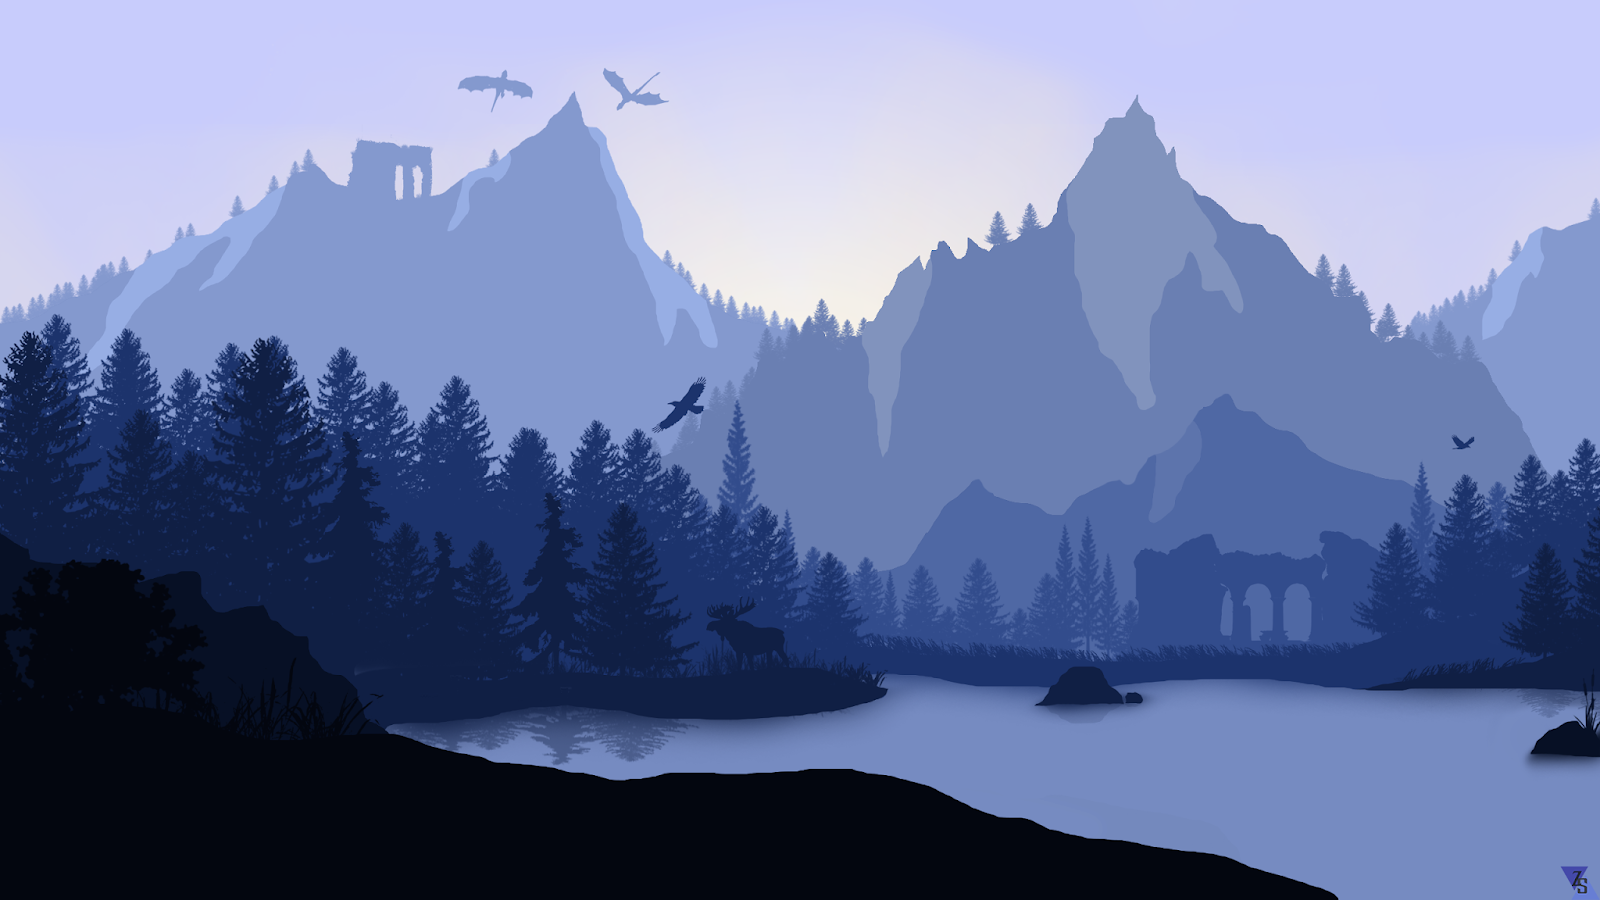 Dragons and minimalist landscape wallpaper for desktop